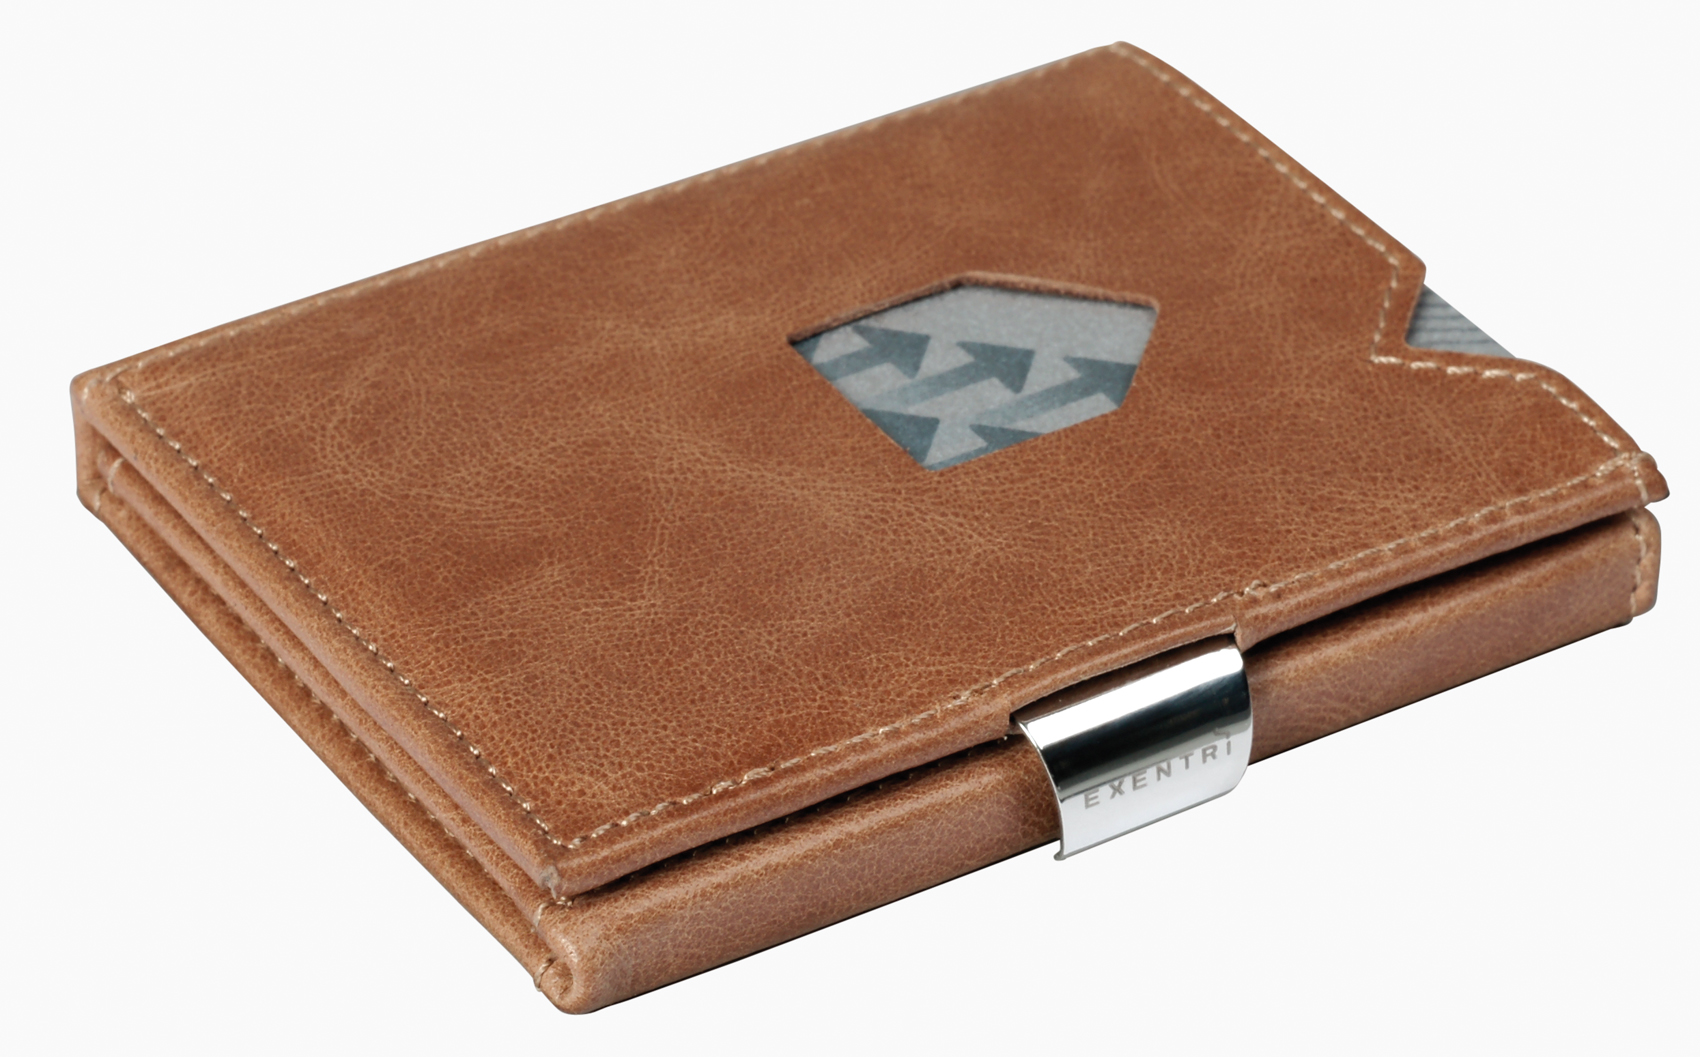 Exentri Wallet RFID Sand